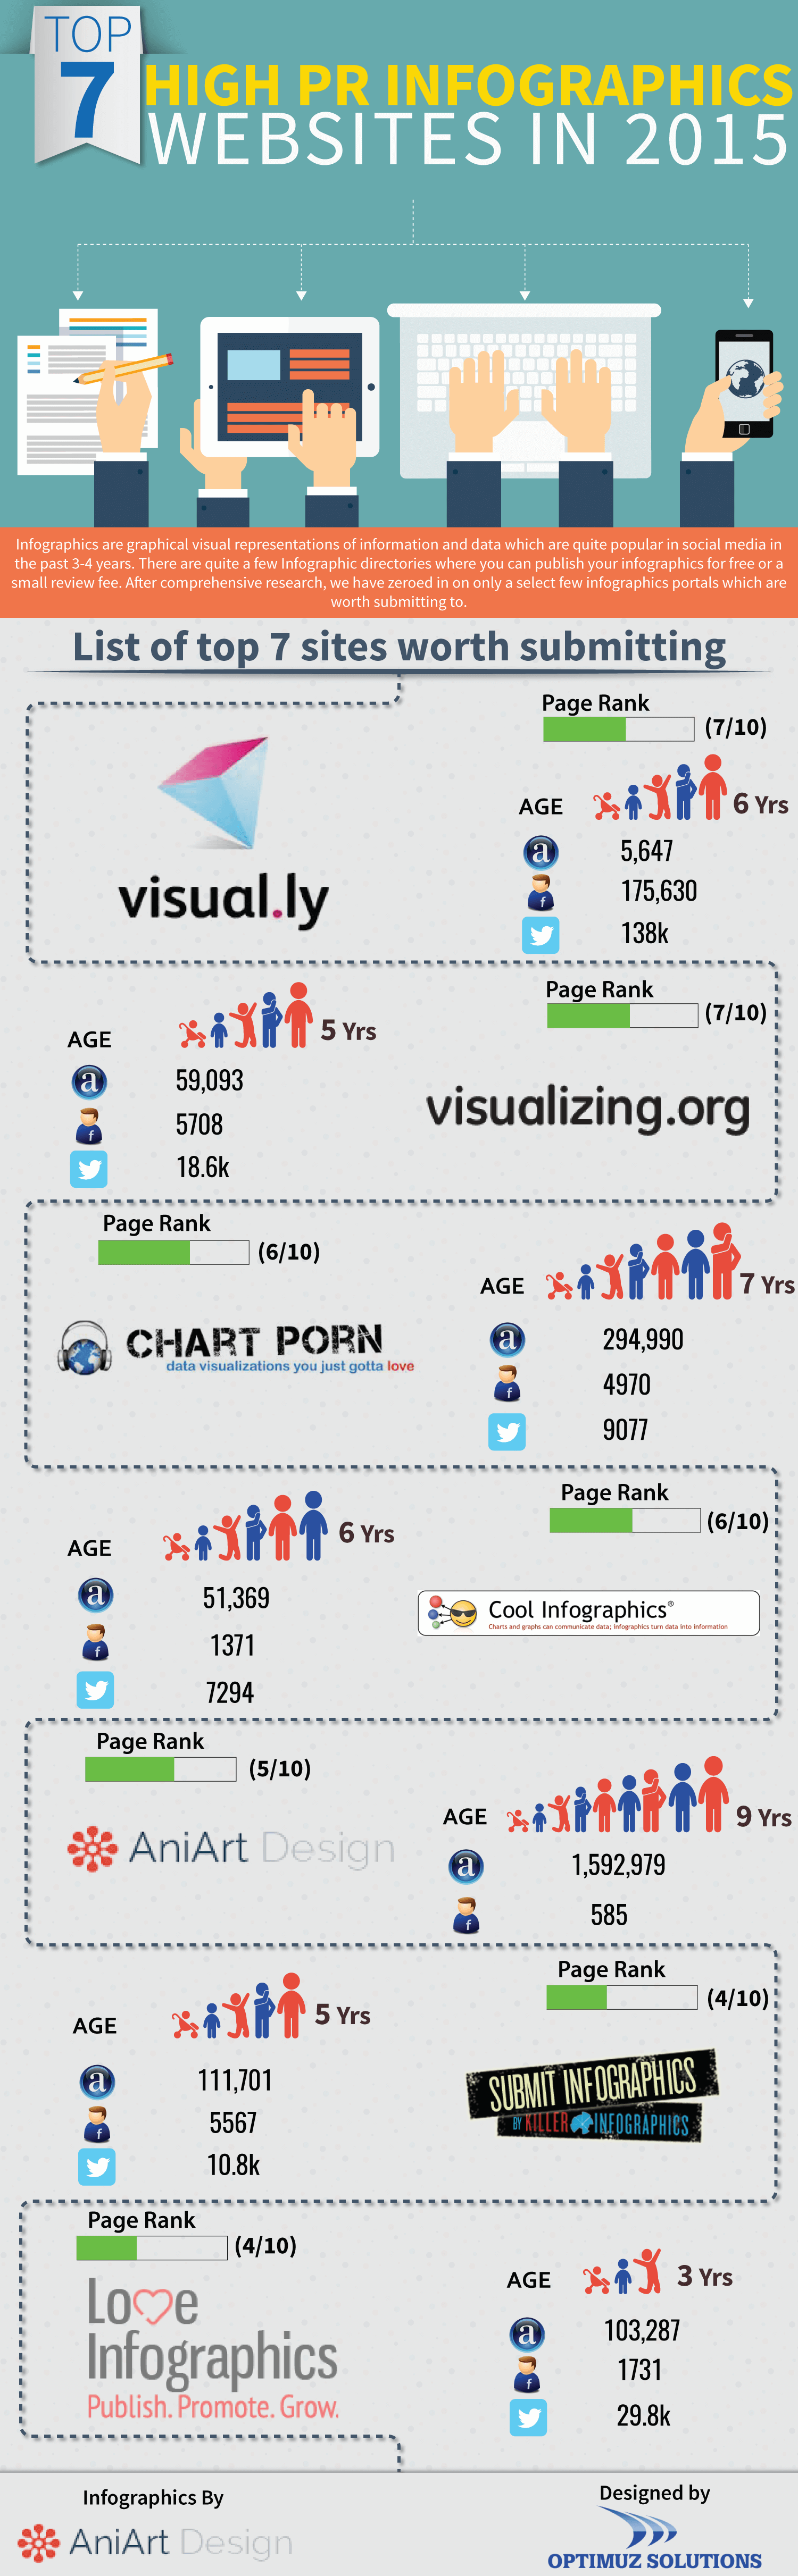 Top 7 Infographics directories in 2015